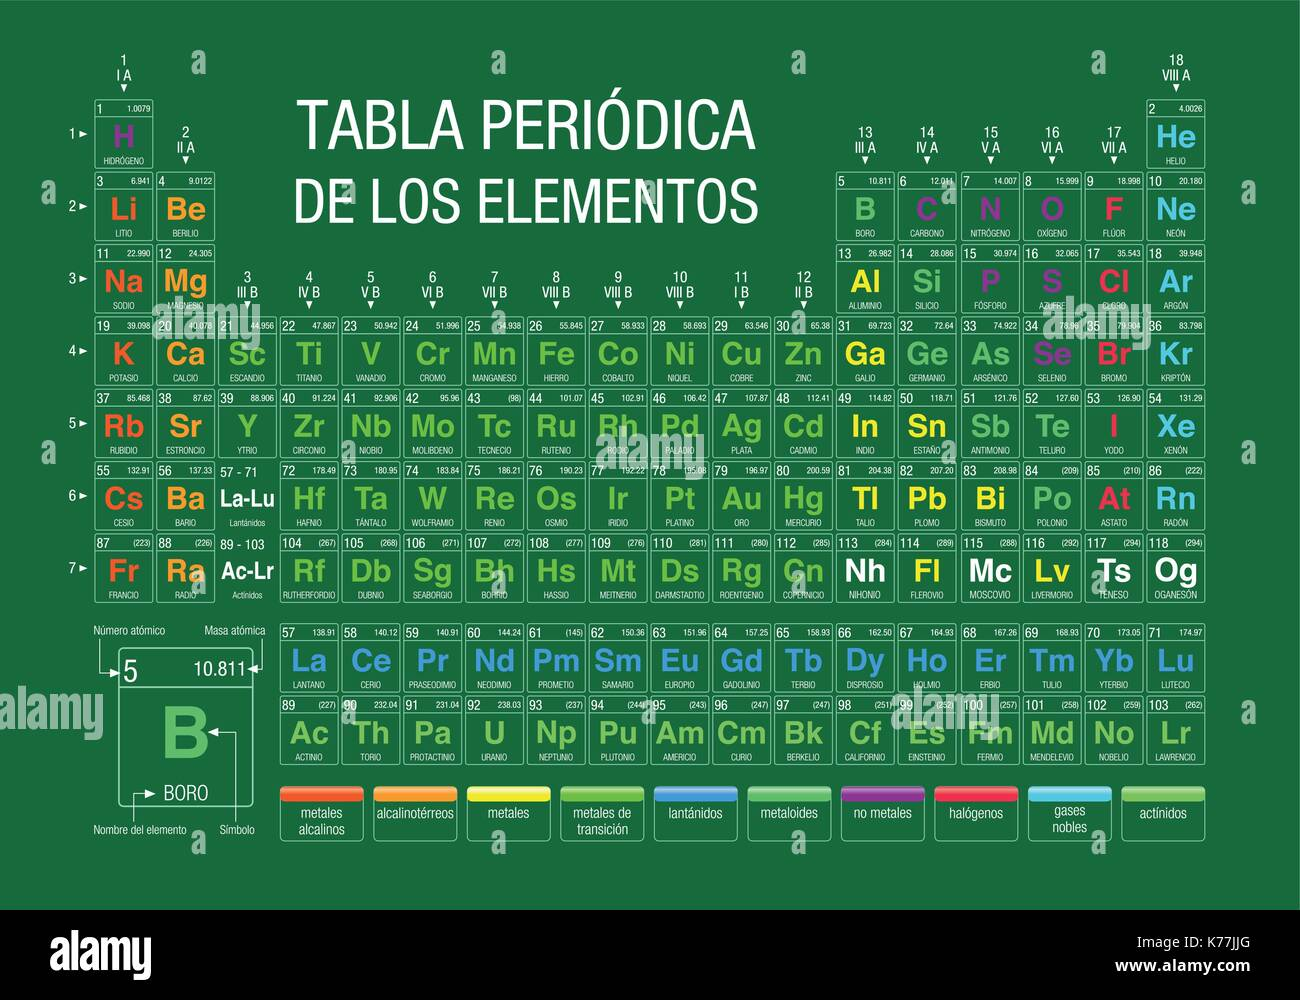 Tabla periodica de los elementos periodic table of elements in tabla periodica de los elementos periodic table of elements in spanish language on green background with the 4 new elements included urtaz Choice Image